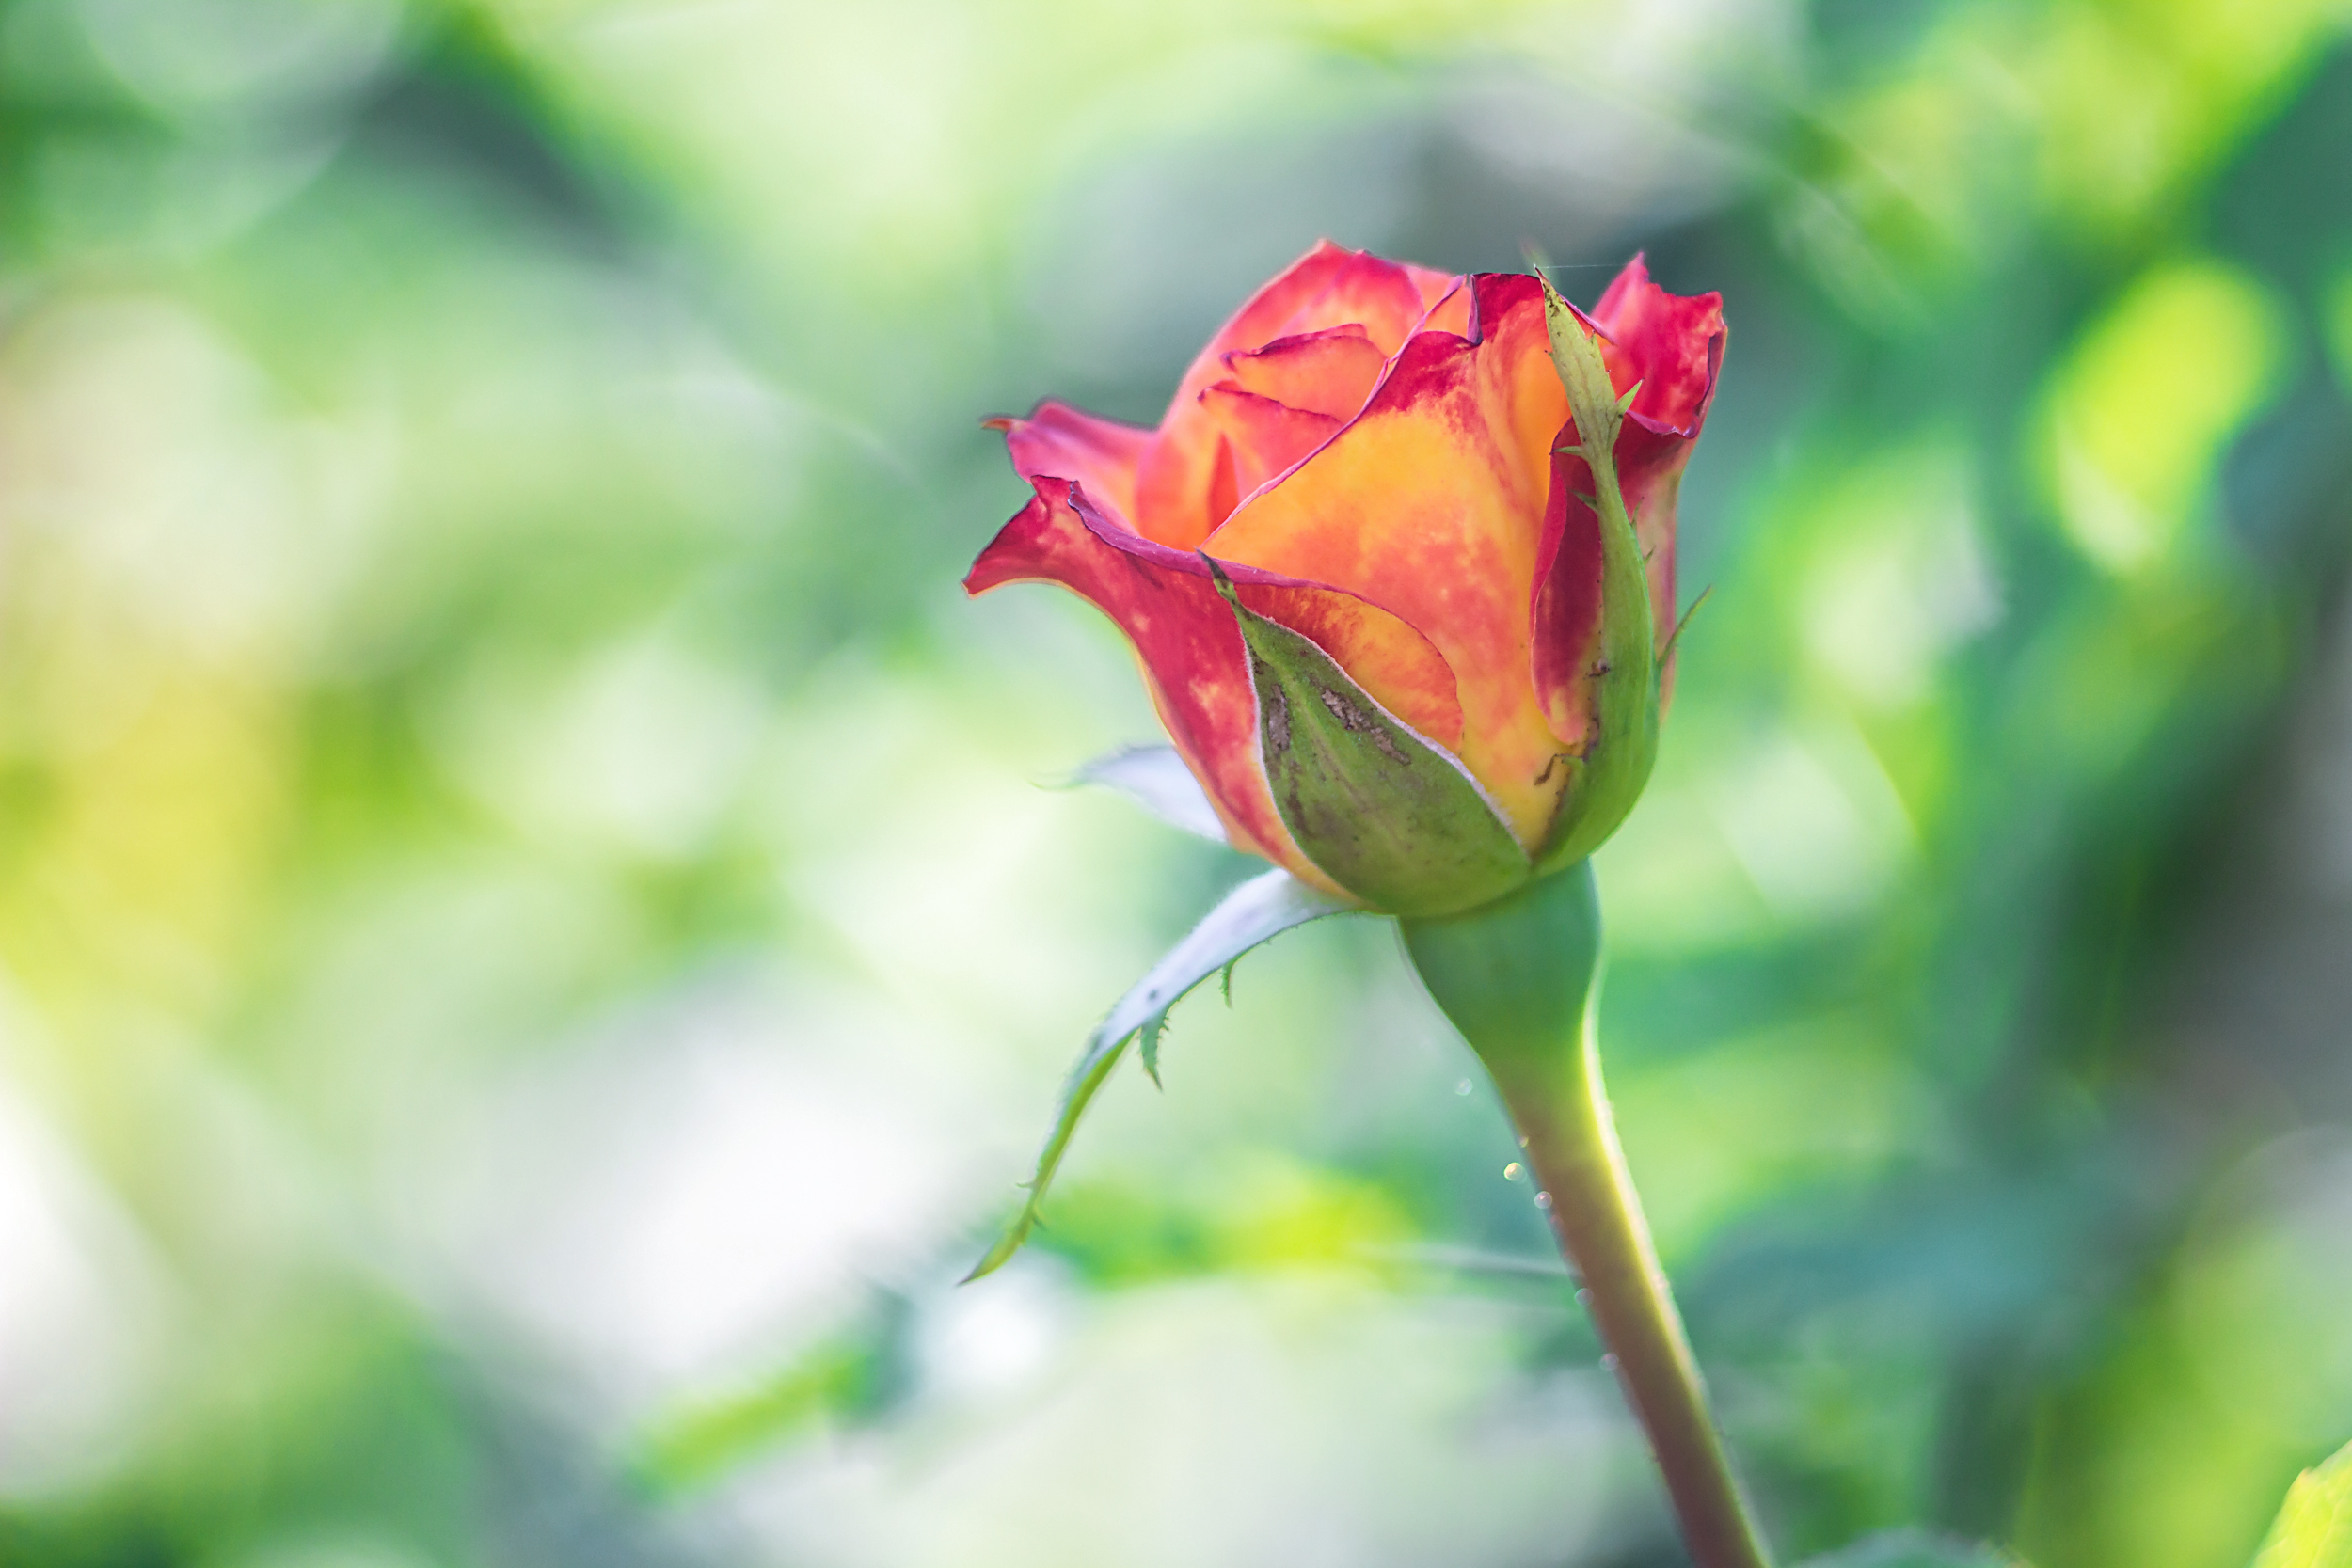 Rose Care: How Do I Keep My Roses Blooming All Summer?